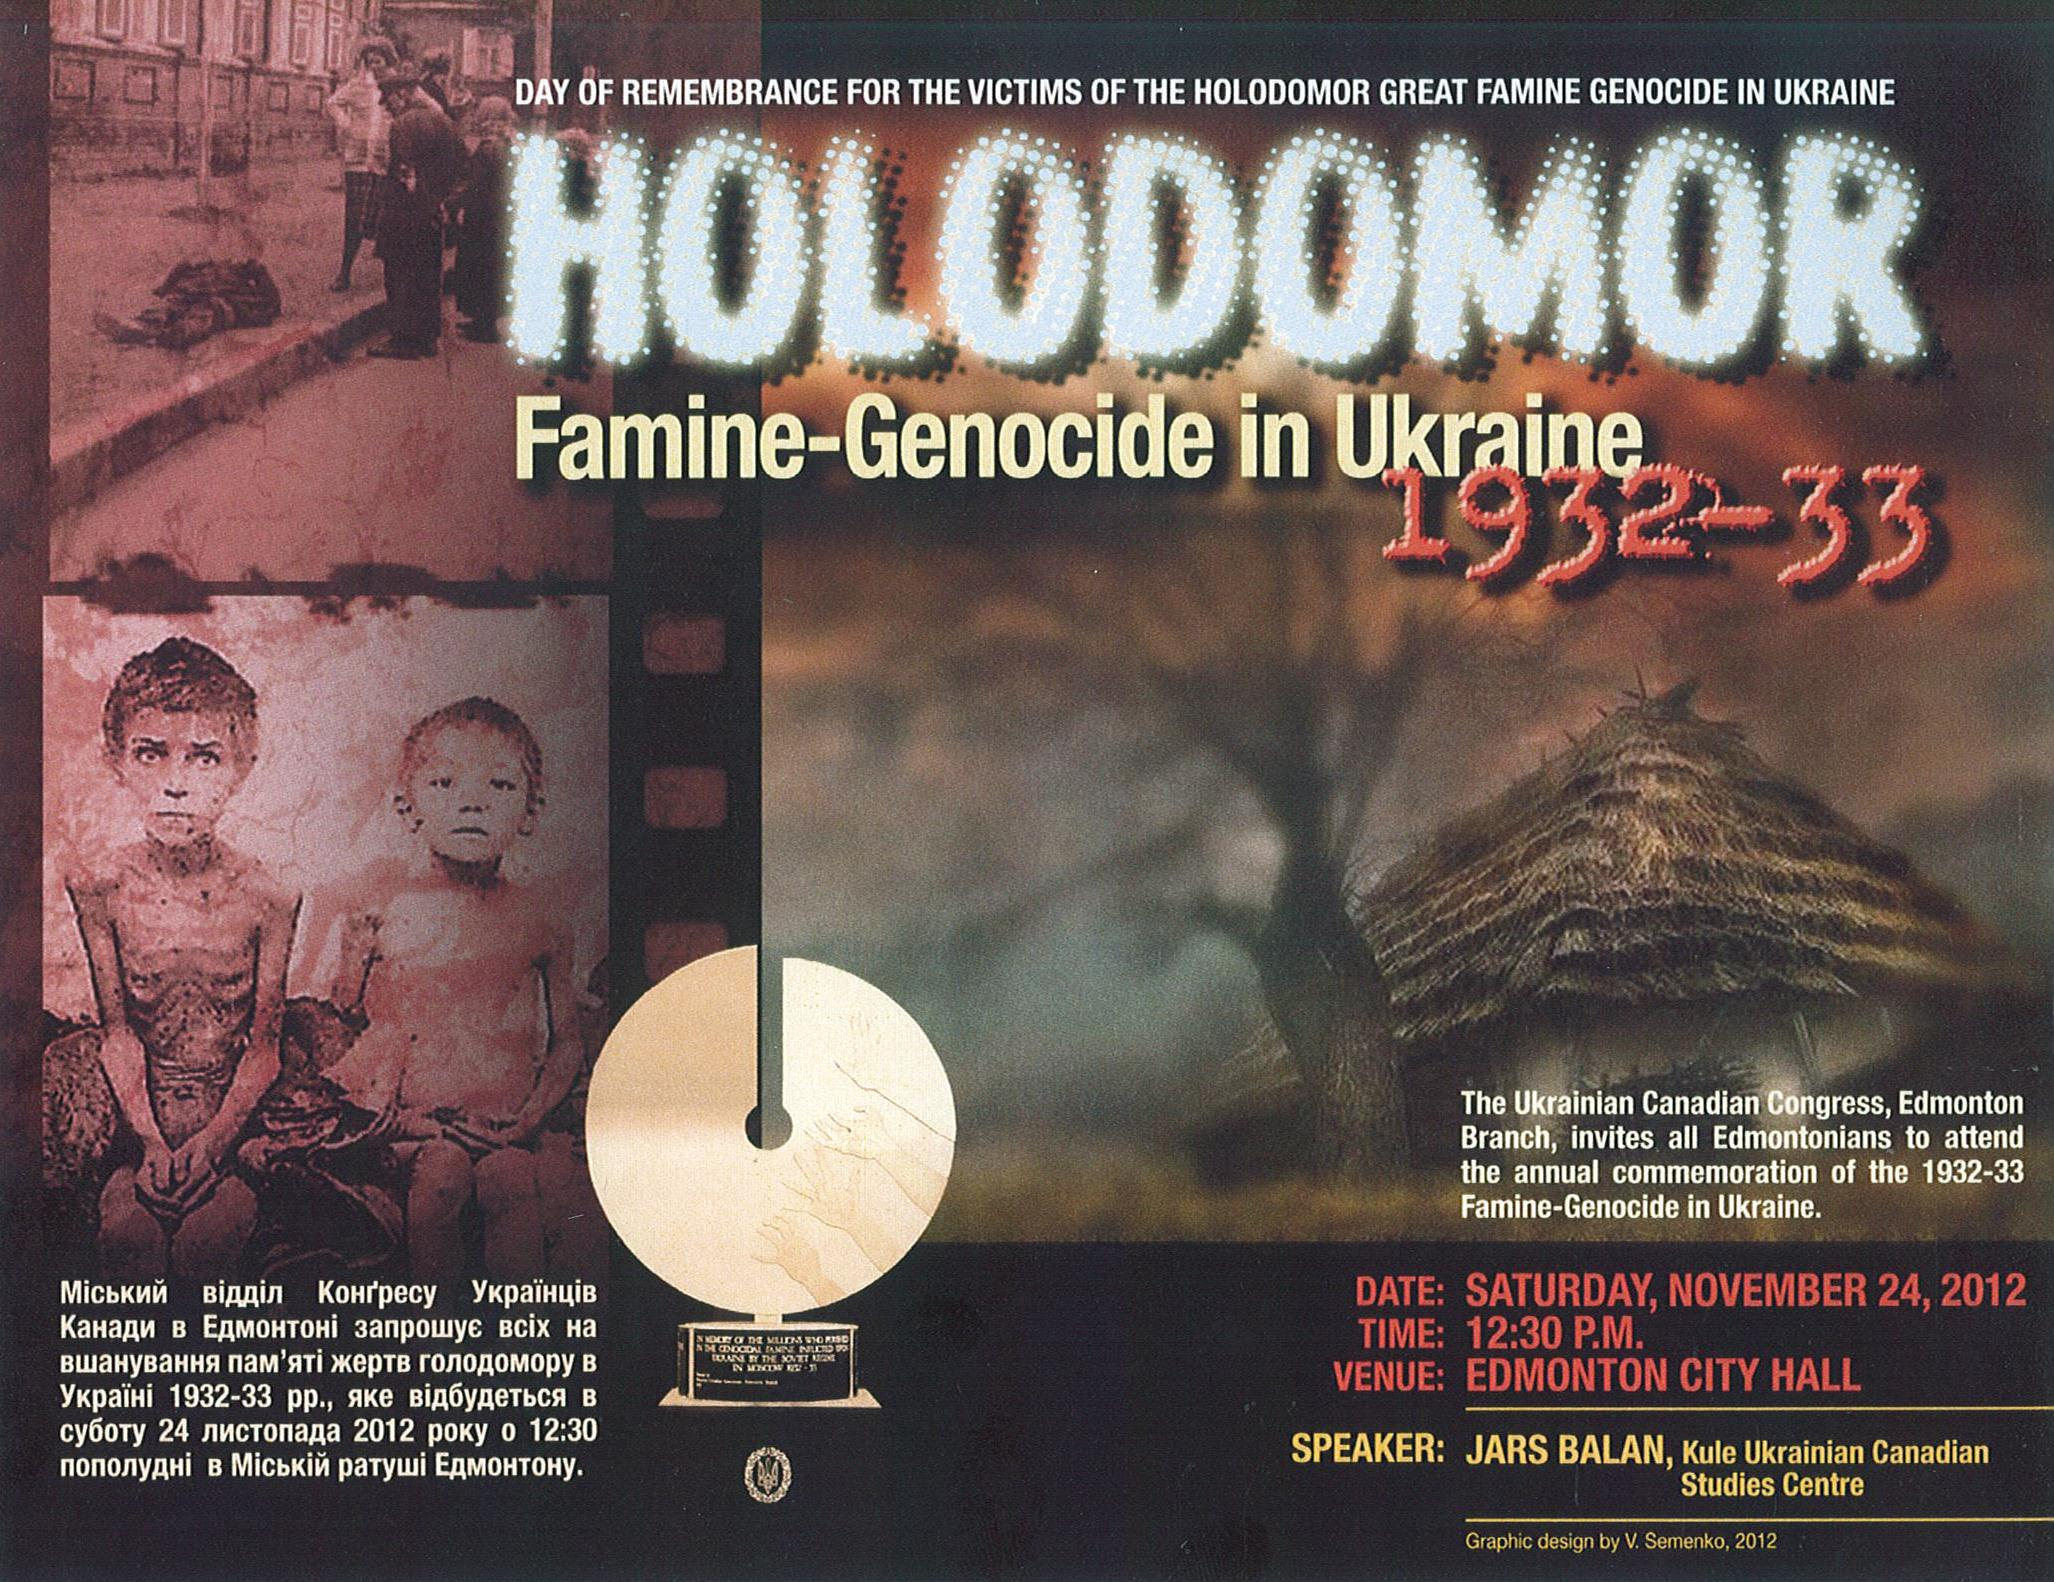 Day of Remembrance for the victims of the Holodomor Great Famine Genocide in Ukraine (1932-33).